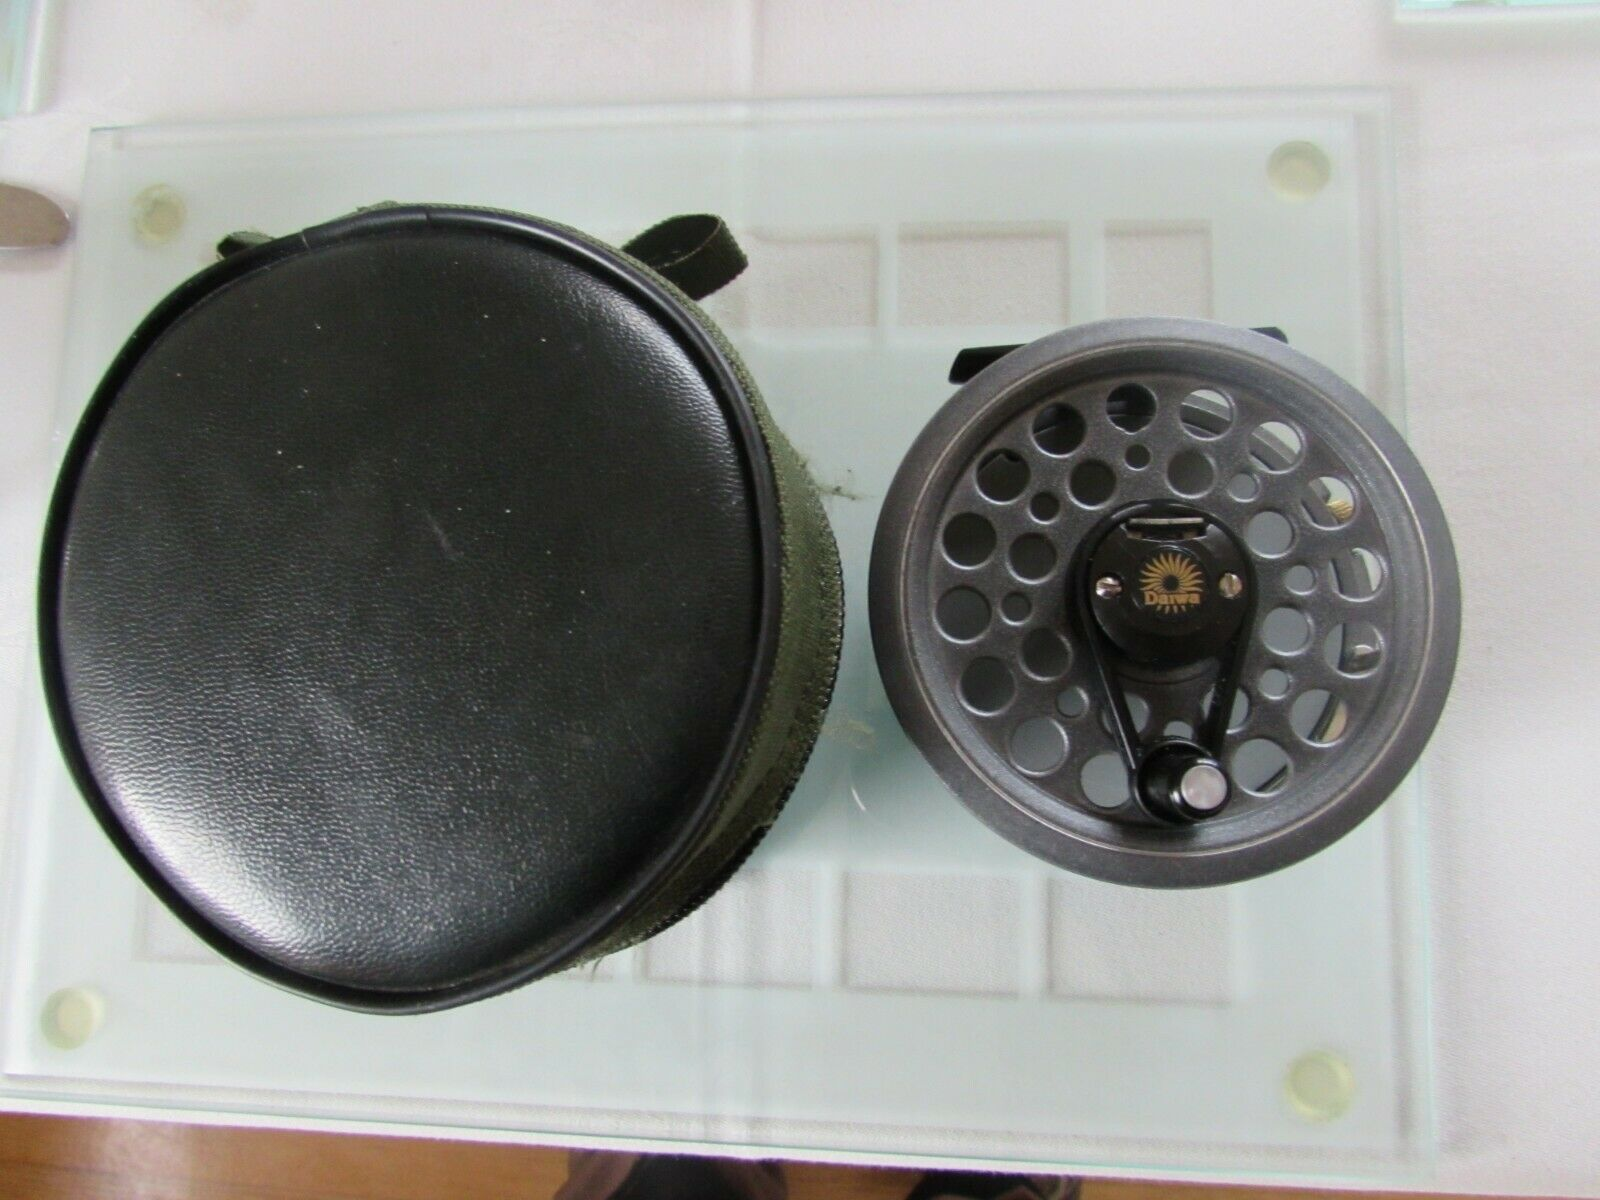 A1 VINTAGE Youngs DAIWA Osprey Moltiplicatore speedex 1500 FLY FISHING REEL & Sacchetto